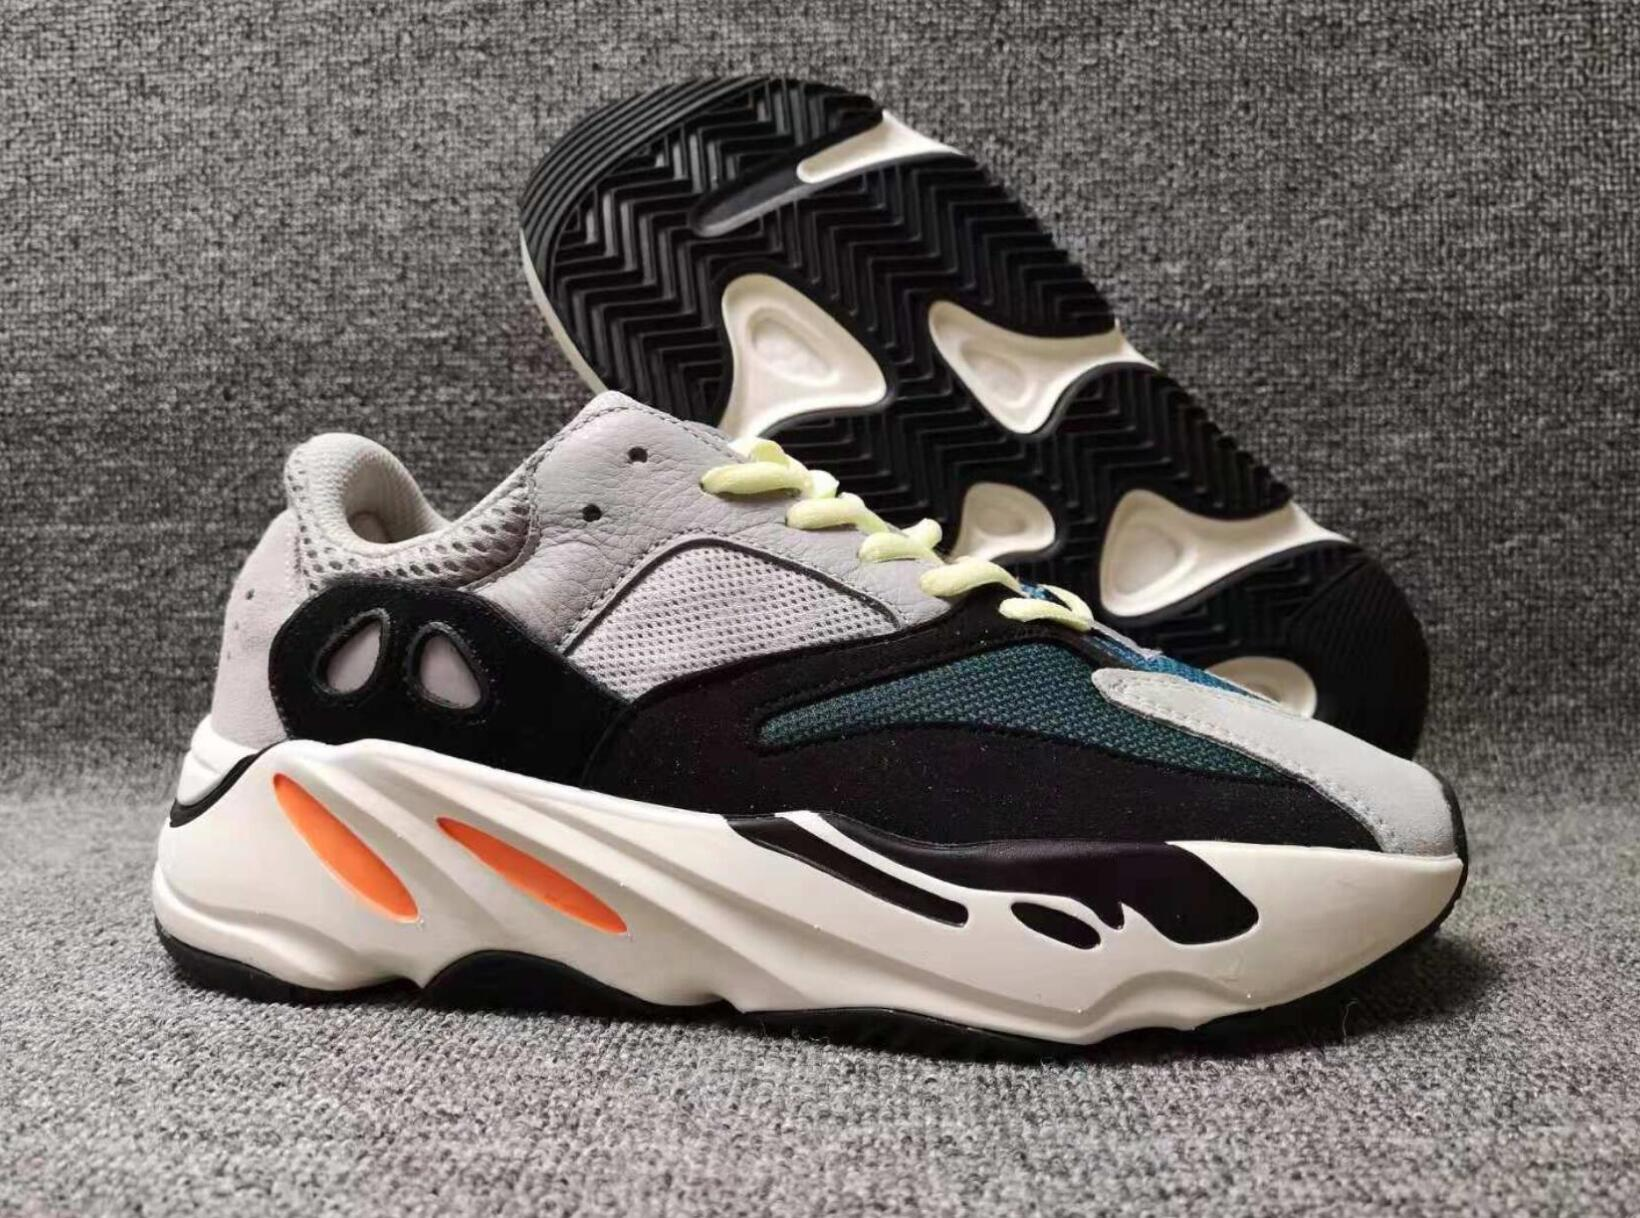 super popular cb587 67333 700 Wave Runner womens sanQuality Real Womens Mens Shoes Design By Kanye  West Season 700s Sneakers size 36-46 Christmas gift